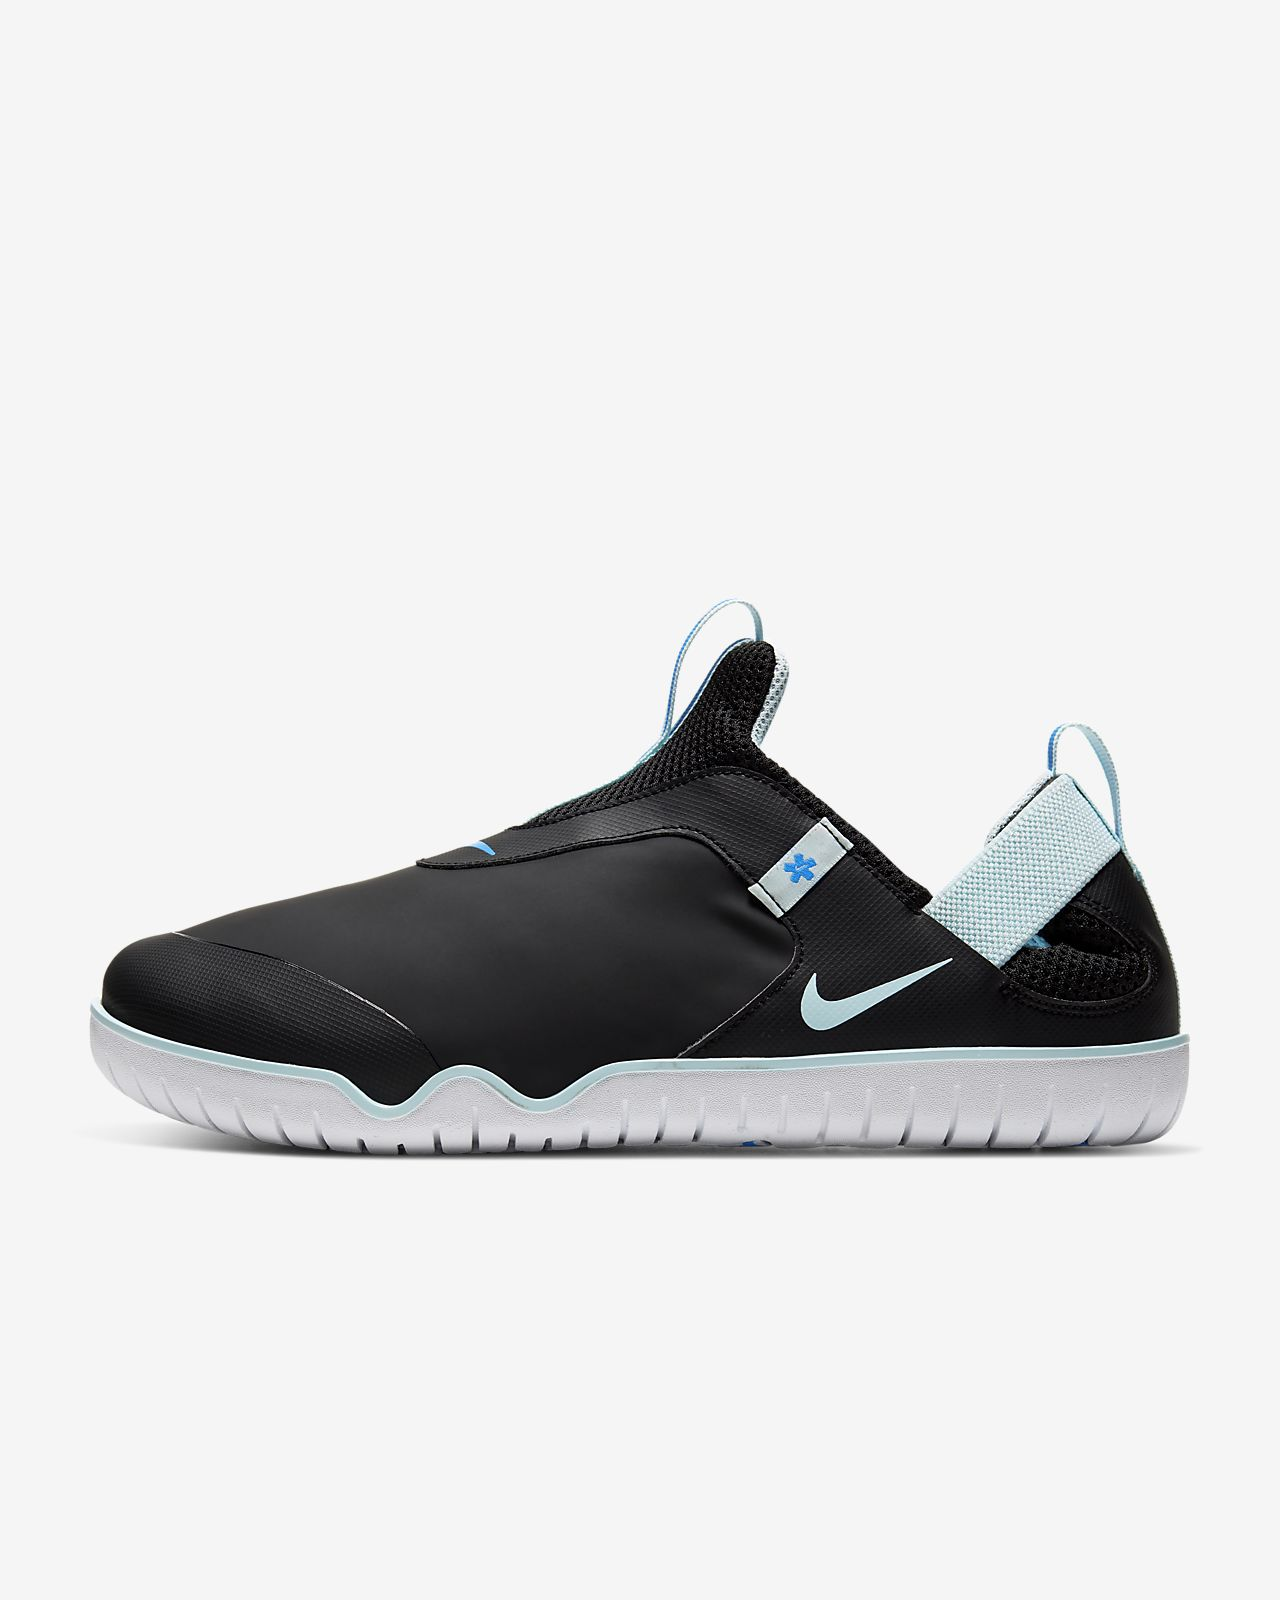 Nike Air Zoom Pulse Shoe